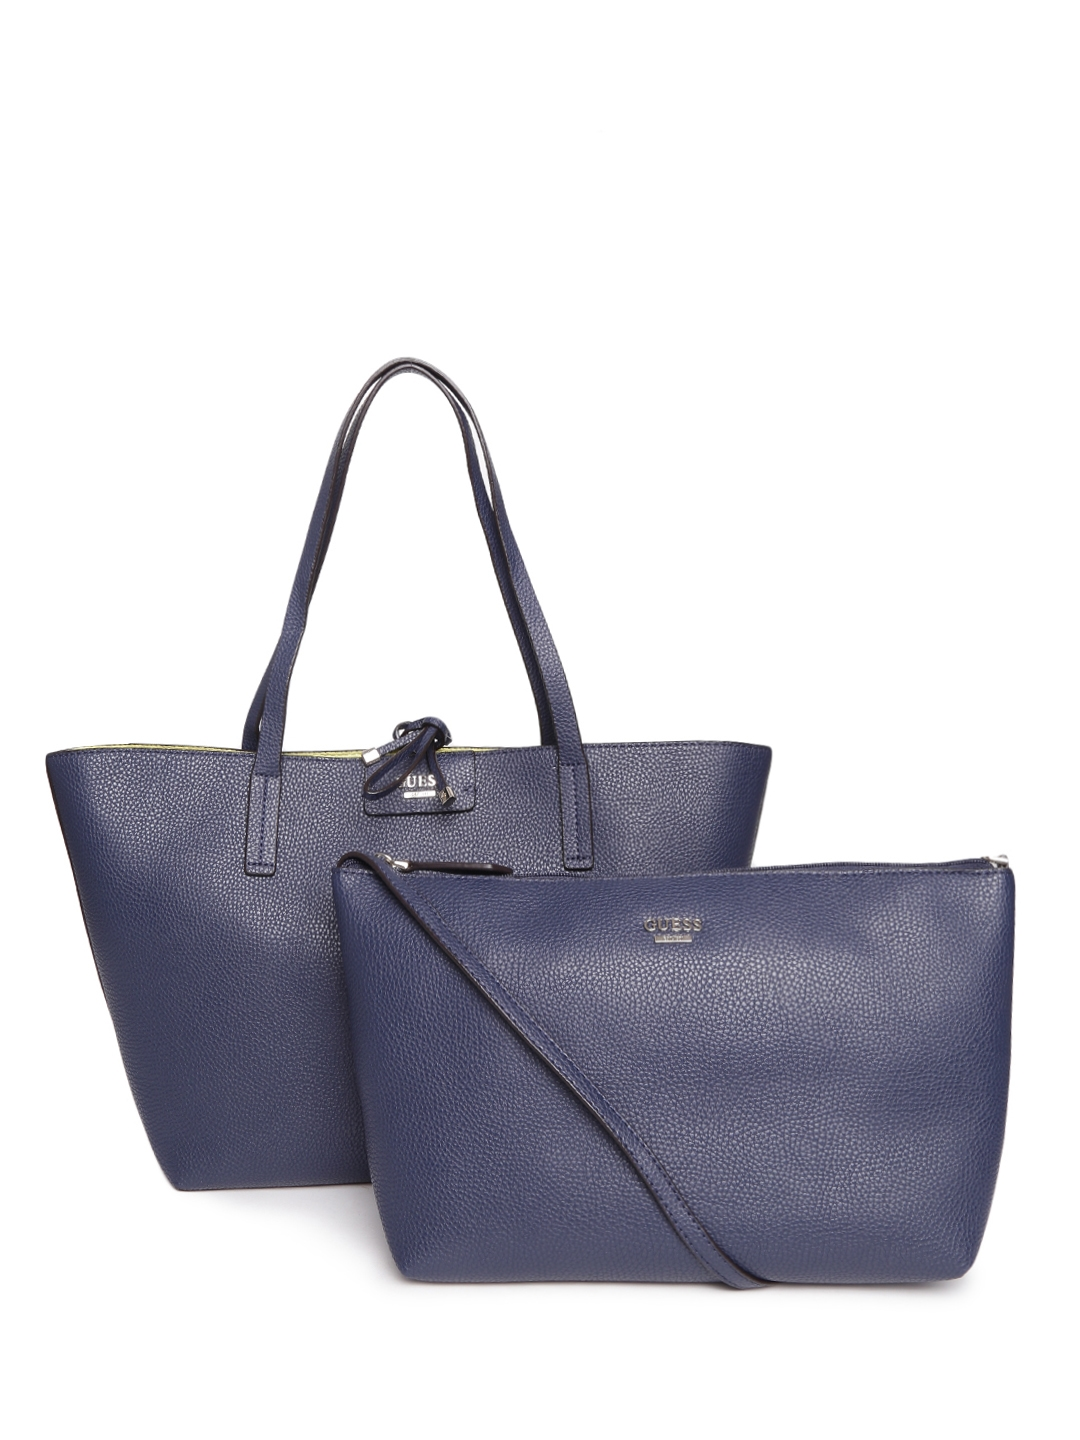 e41fa889a5c1 Buy GUESS Navy   Lime Green Textured Reversible Tote Bag With Sling Bag -  Handbags for Women 1468007